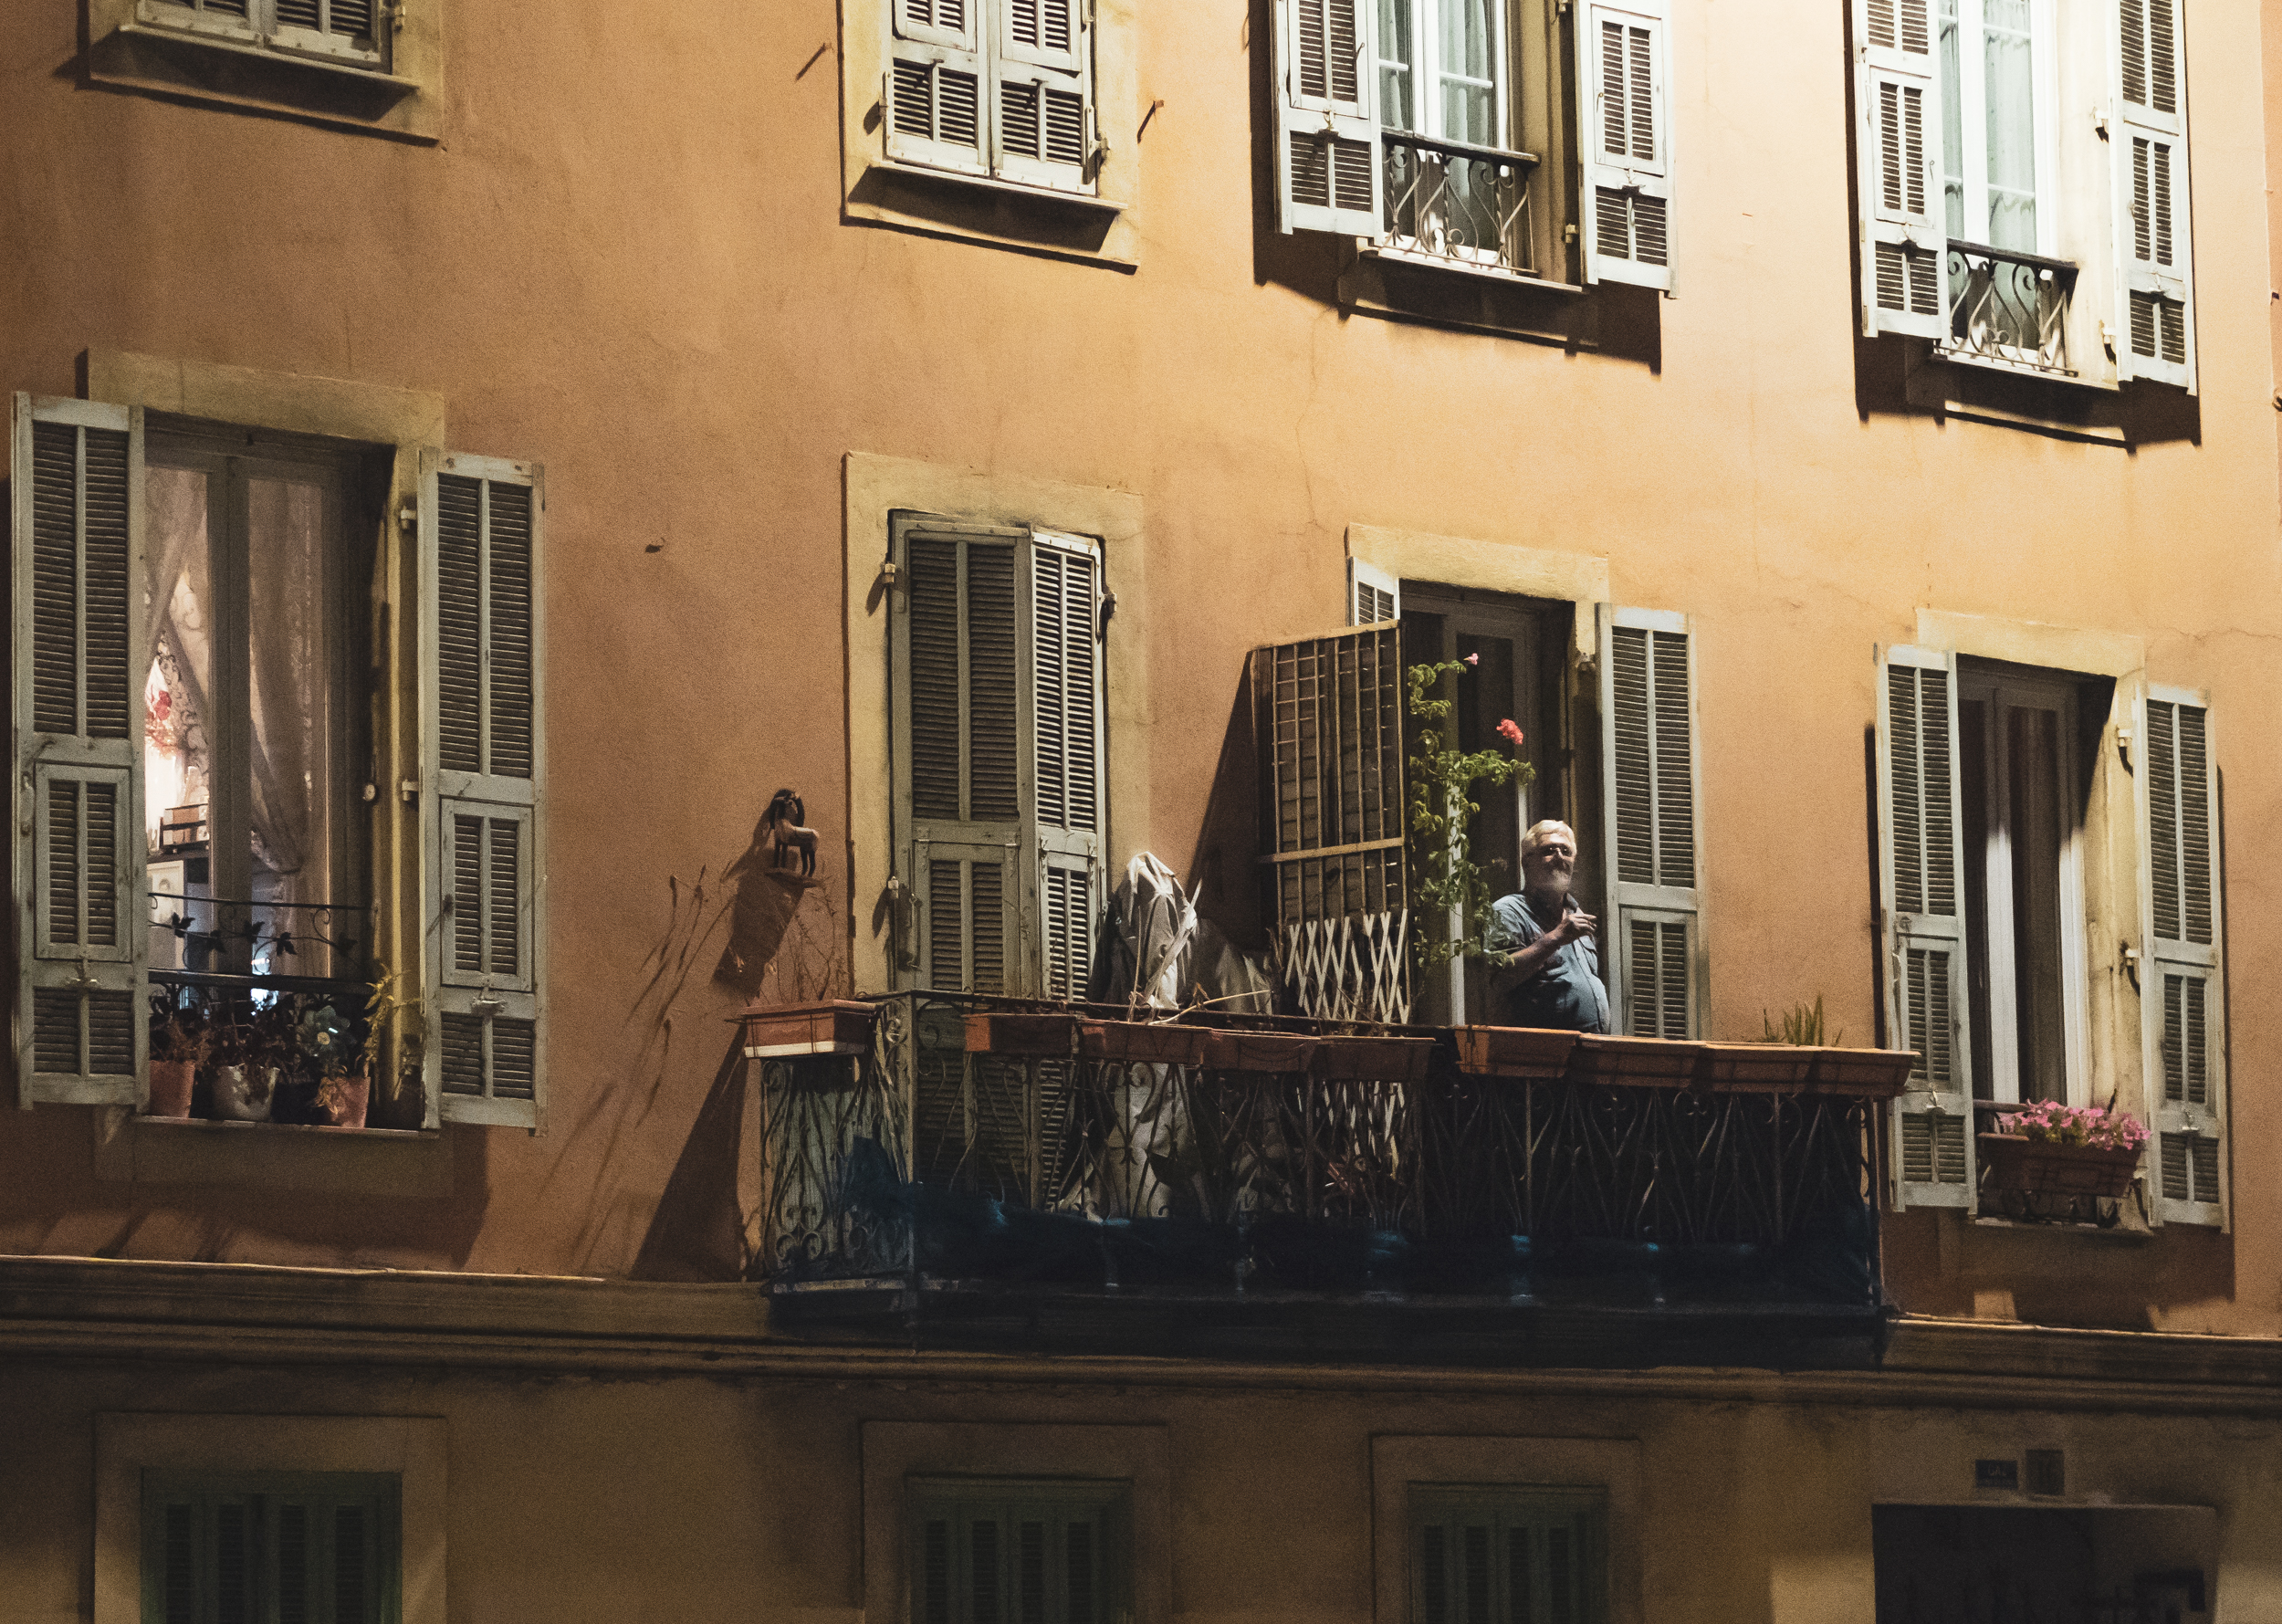 A Cigarette on the Balcony